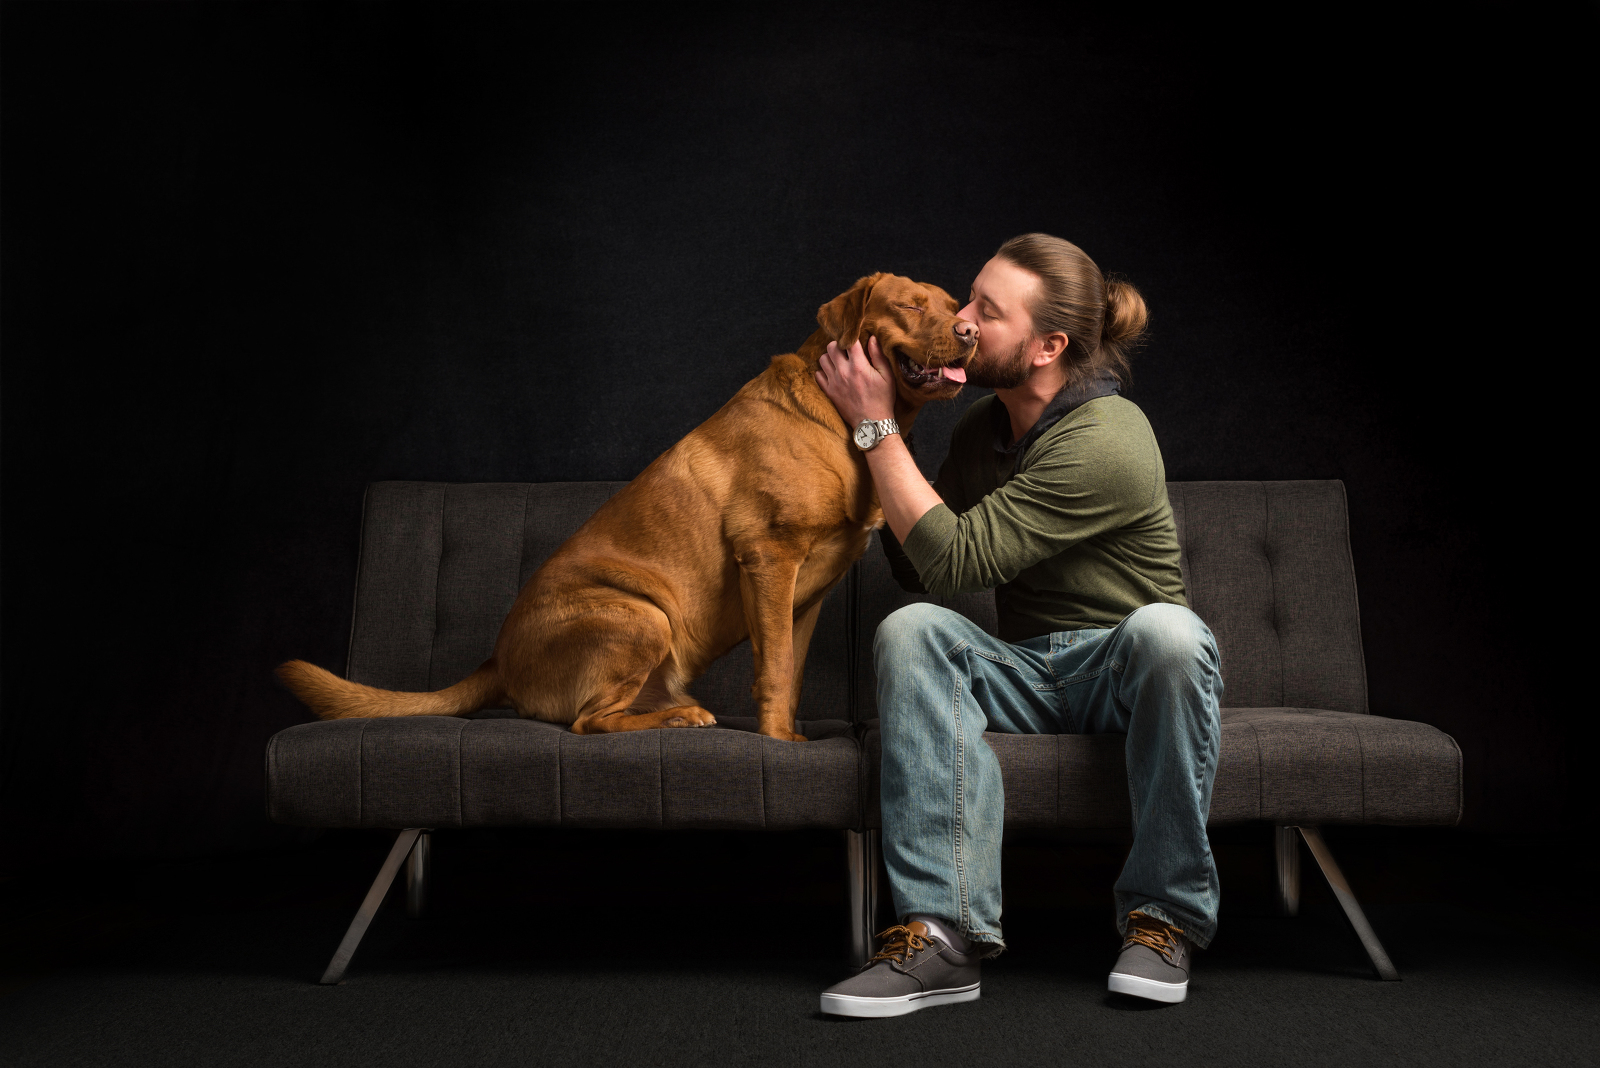 Dog Dad with Nershi on a couch during their pet photoshoot. Photographed by Candice Cusic